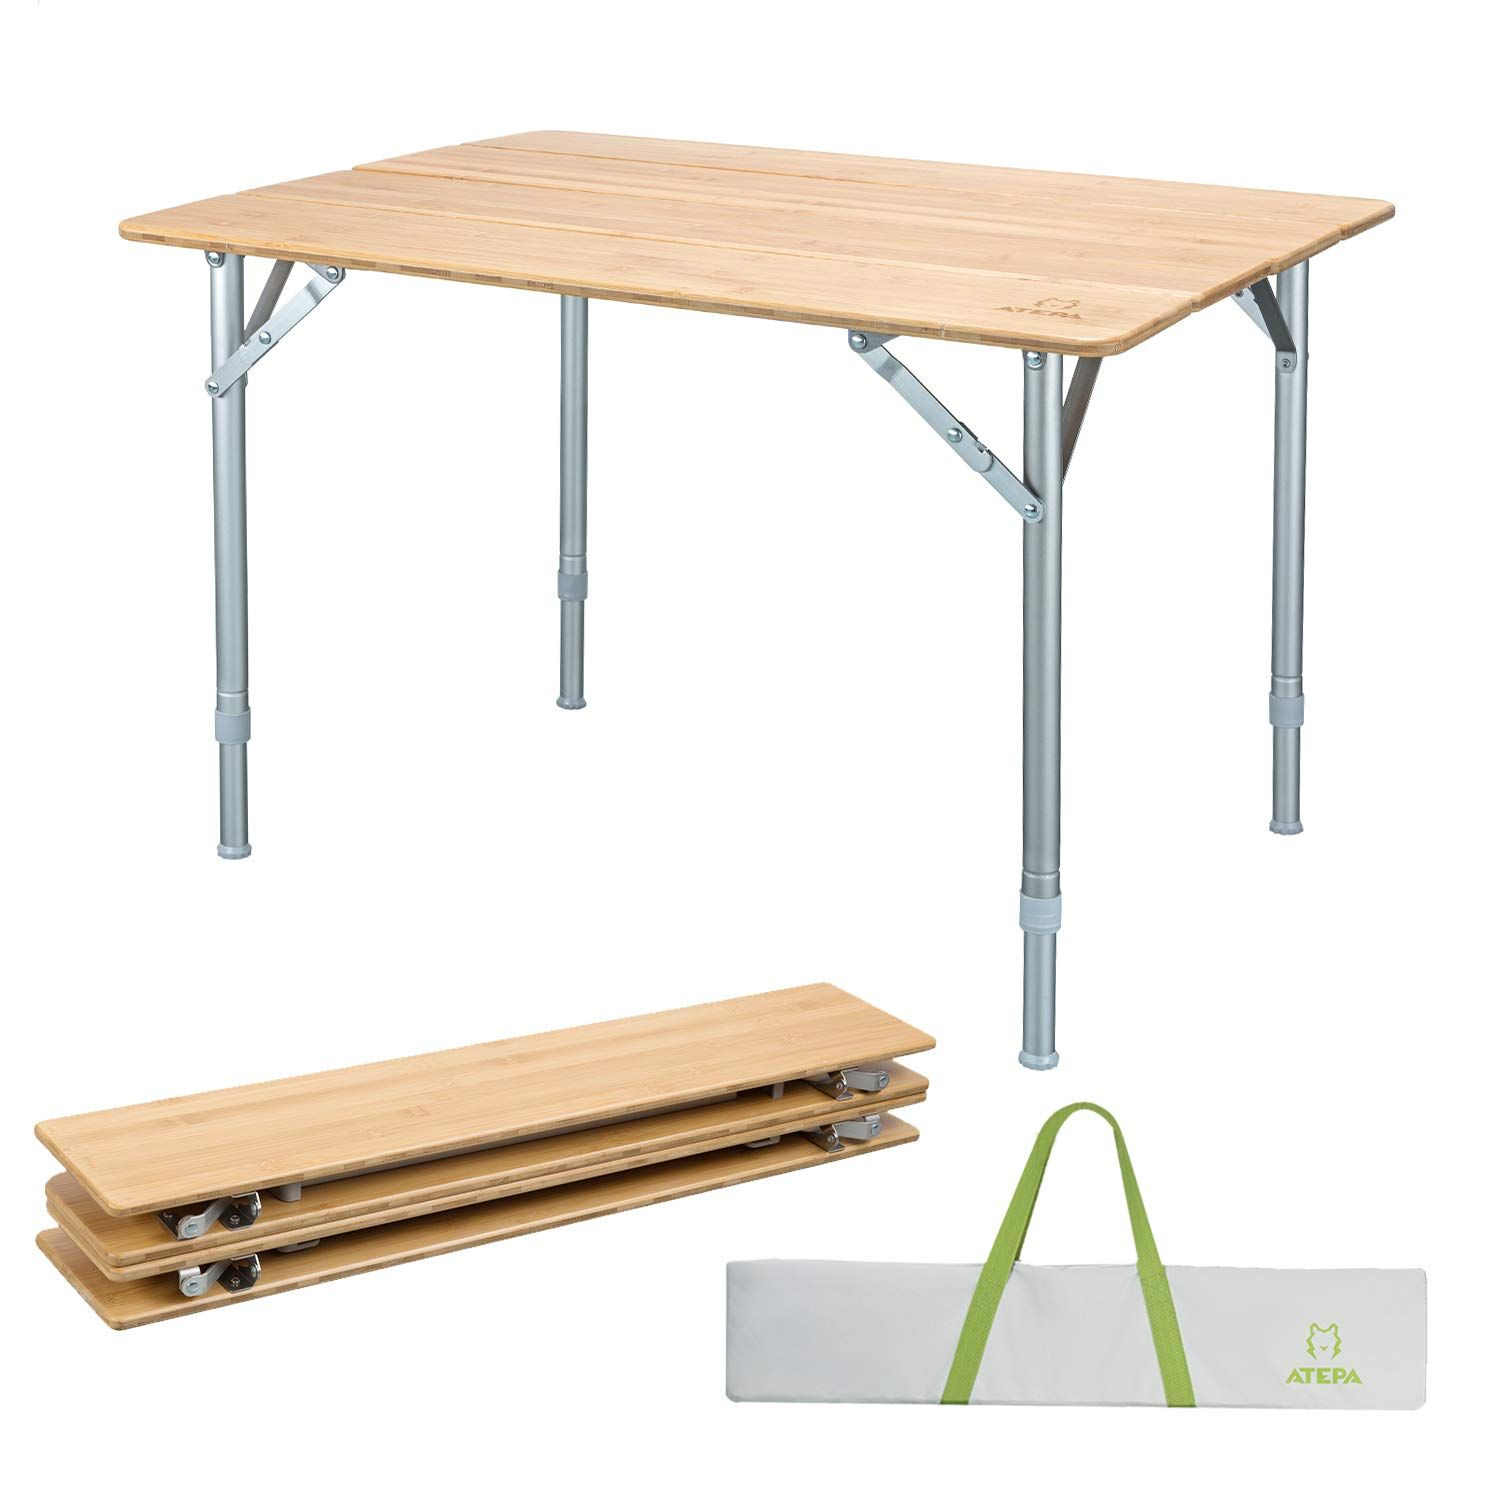 - ATEPA Bamboo Folding Camping Table With Carrying Bag, Adjustable